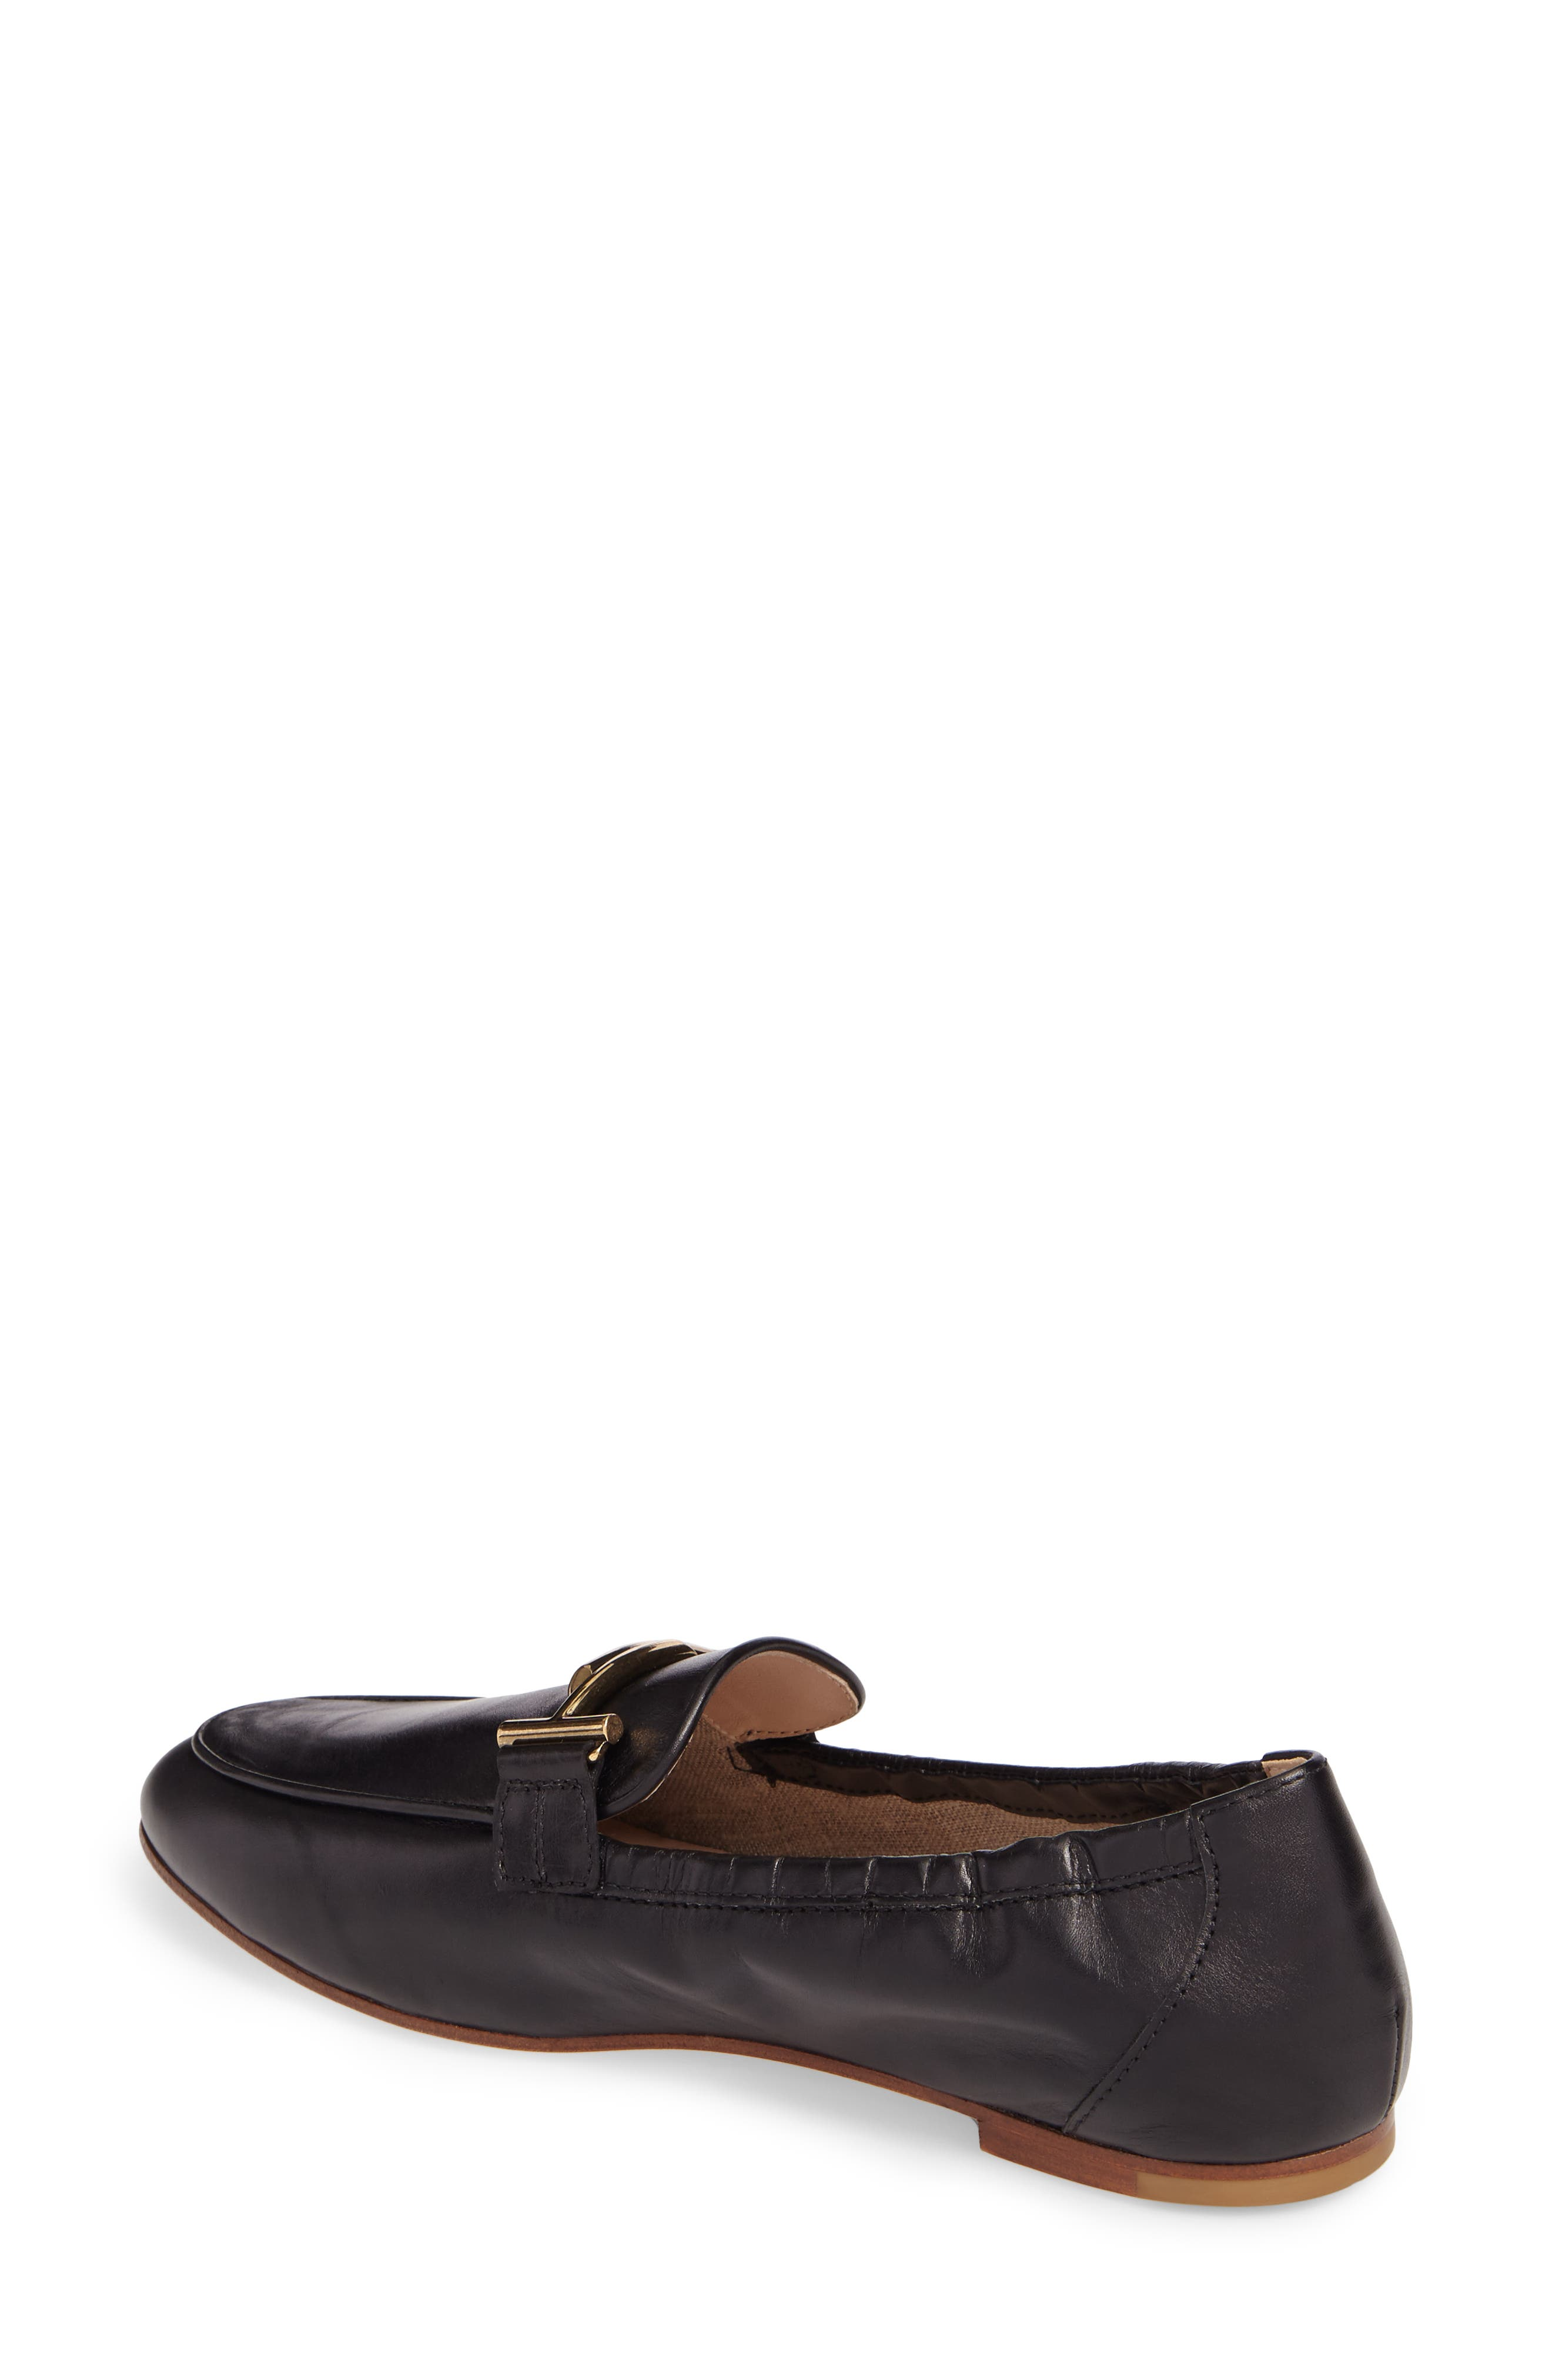 Double T Scrunch Loafer,                             Alternate thumbnail 2, color,                             001